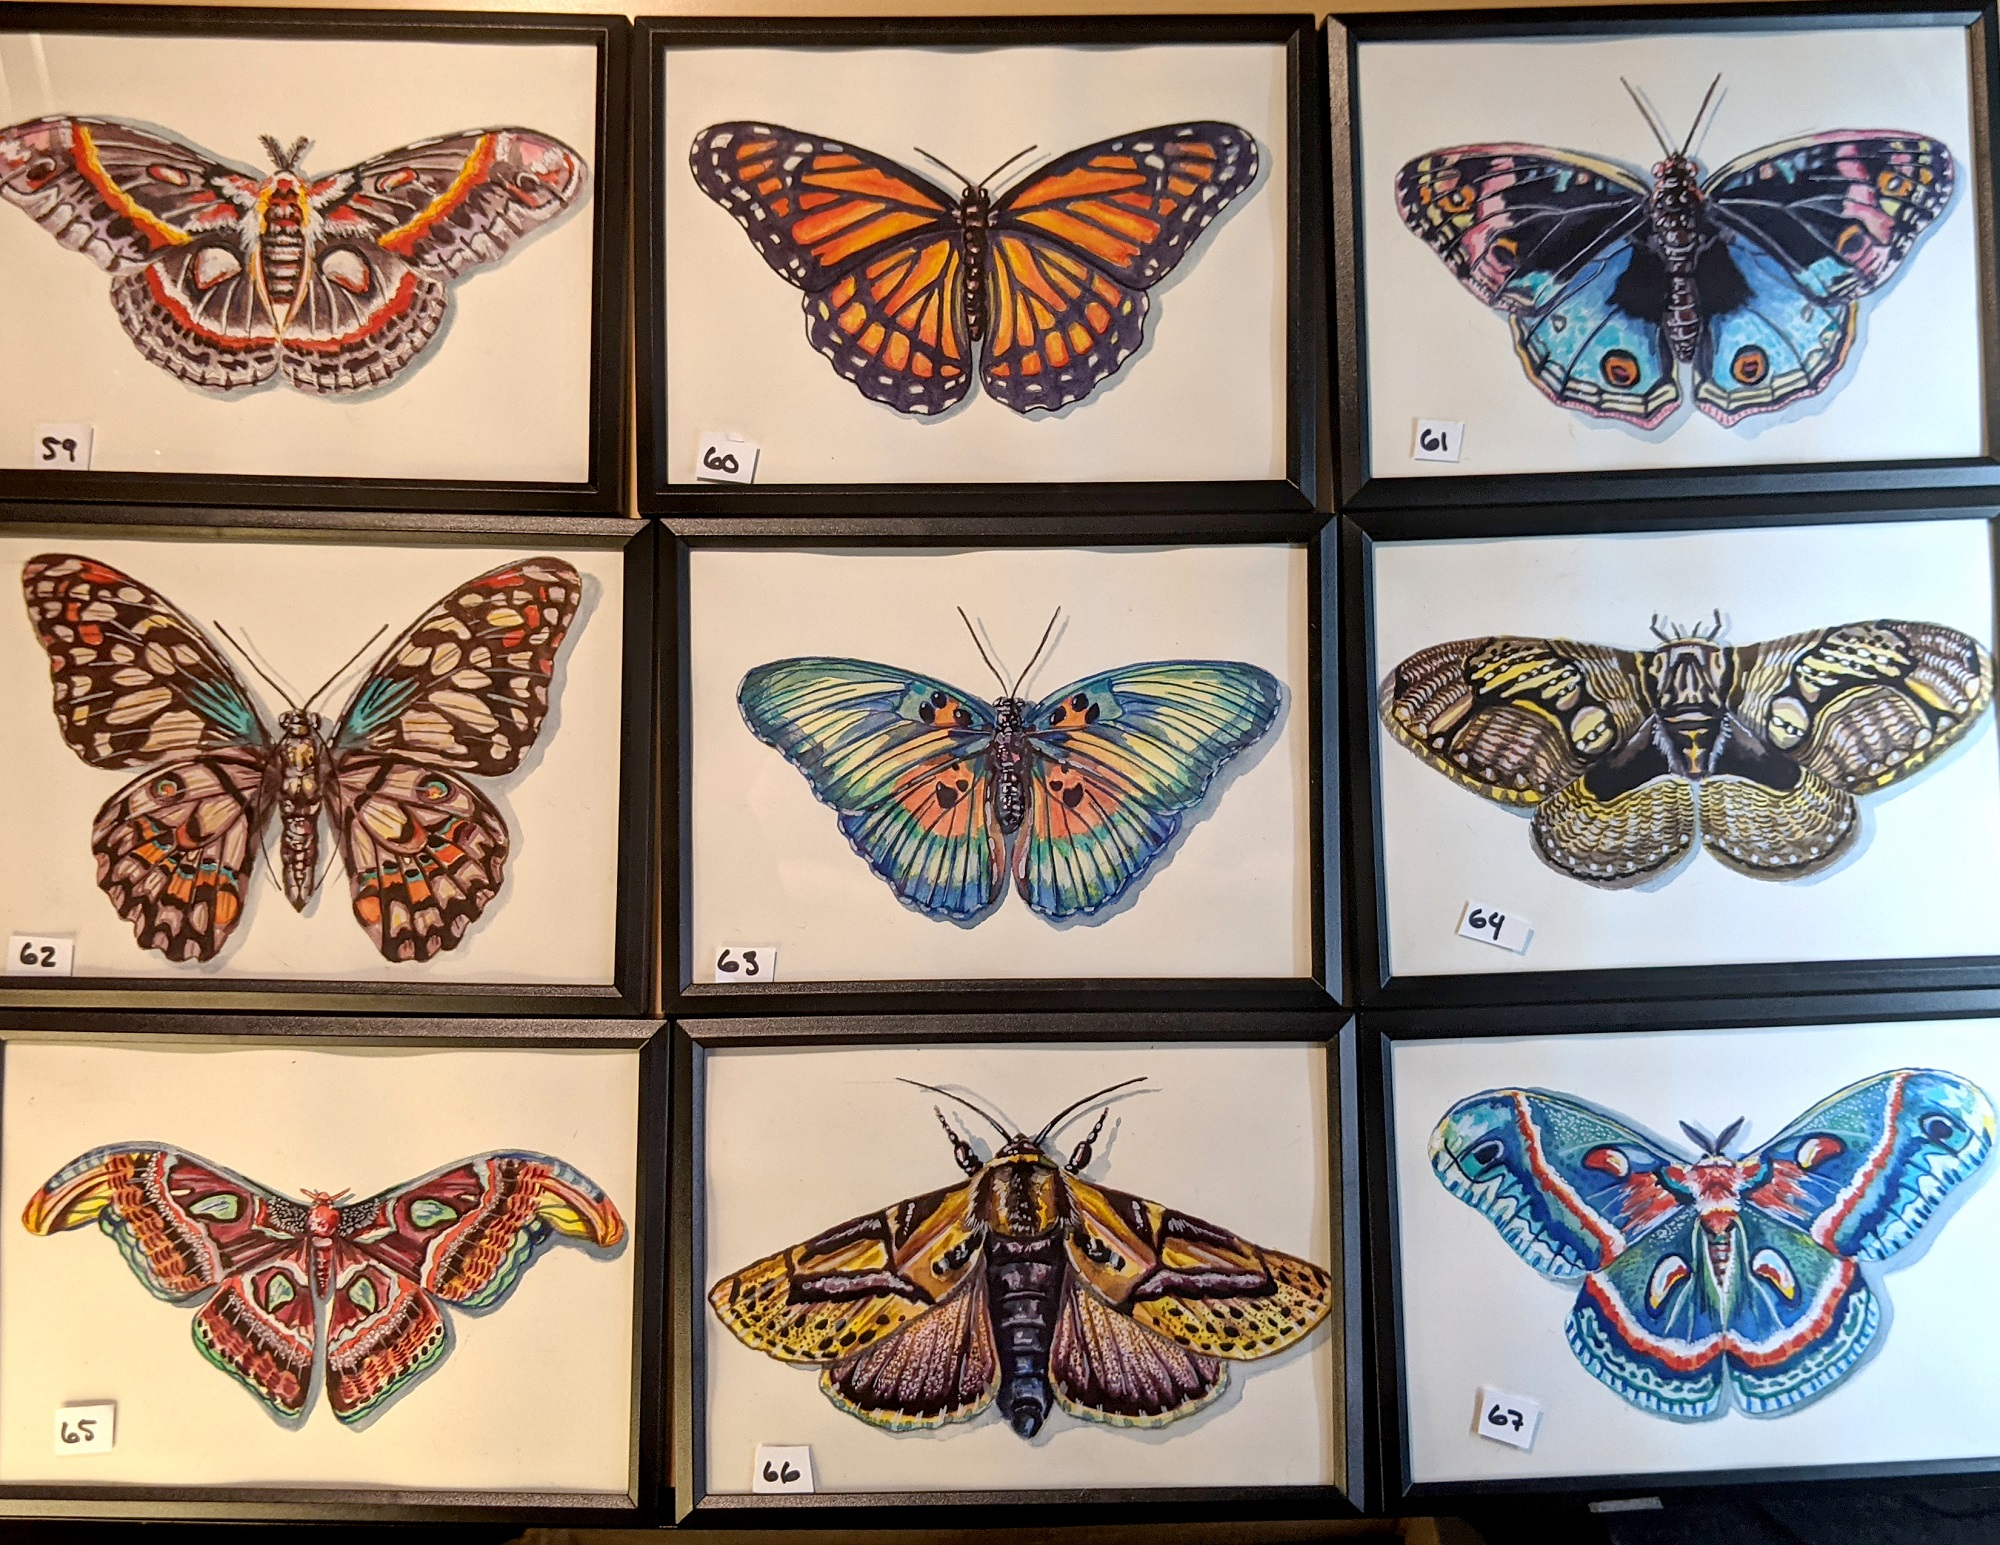 Small Insects 59 – 67 By Martha Iserman (Petals And Wings Exhibition)